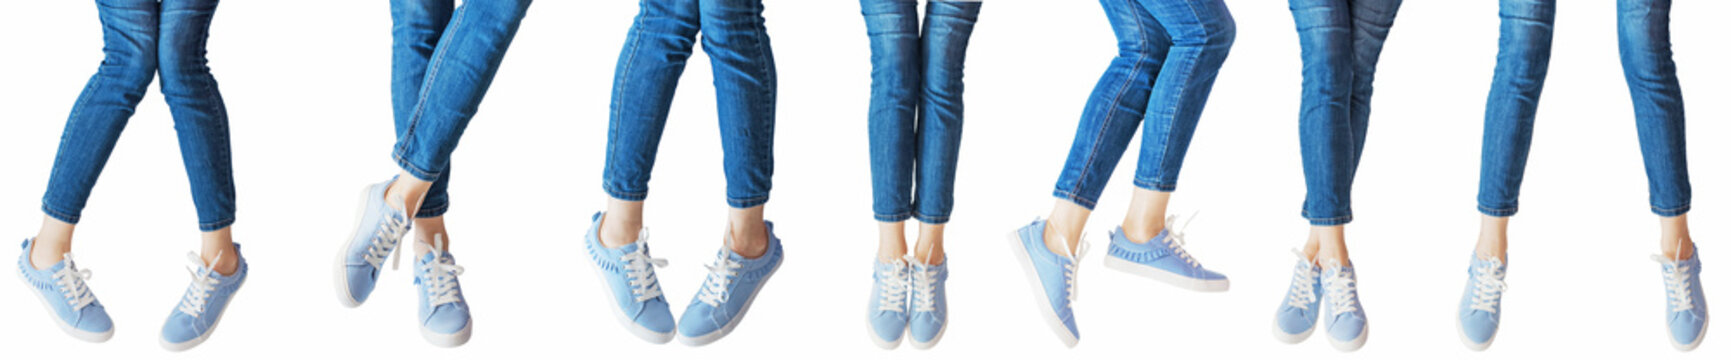 panorama set of female legs in the different poses in jeans and sneakers isolated on white background